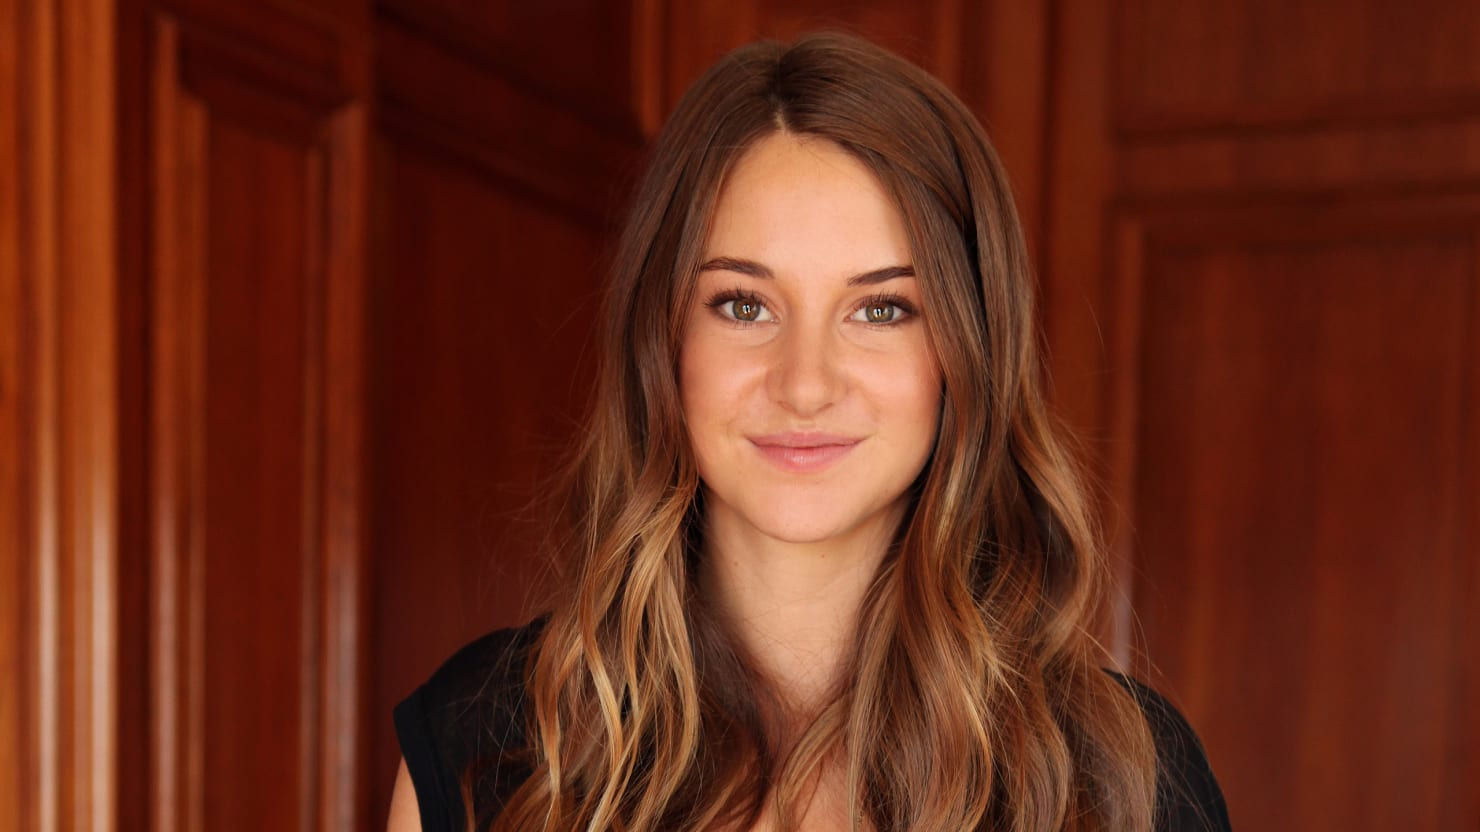 Exclusive: Shailene Woodley On 'Divergent,' J. Law, and Why She Turned Down 'Fifty Shades of Grey'